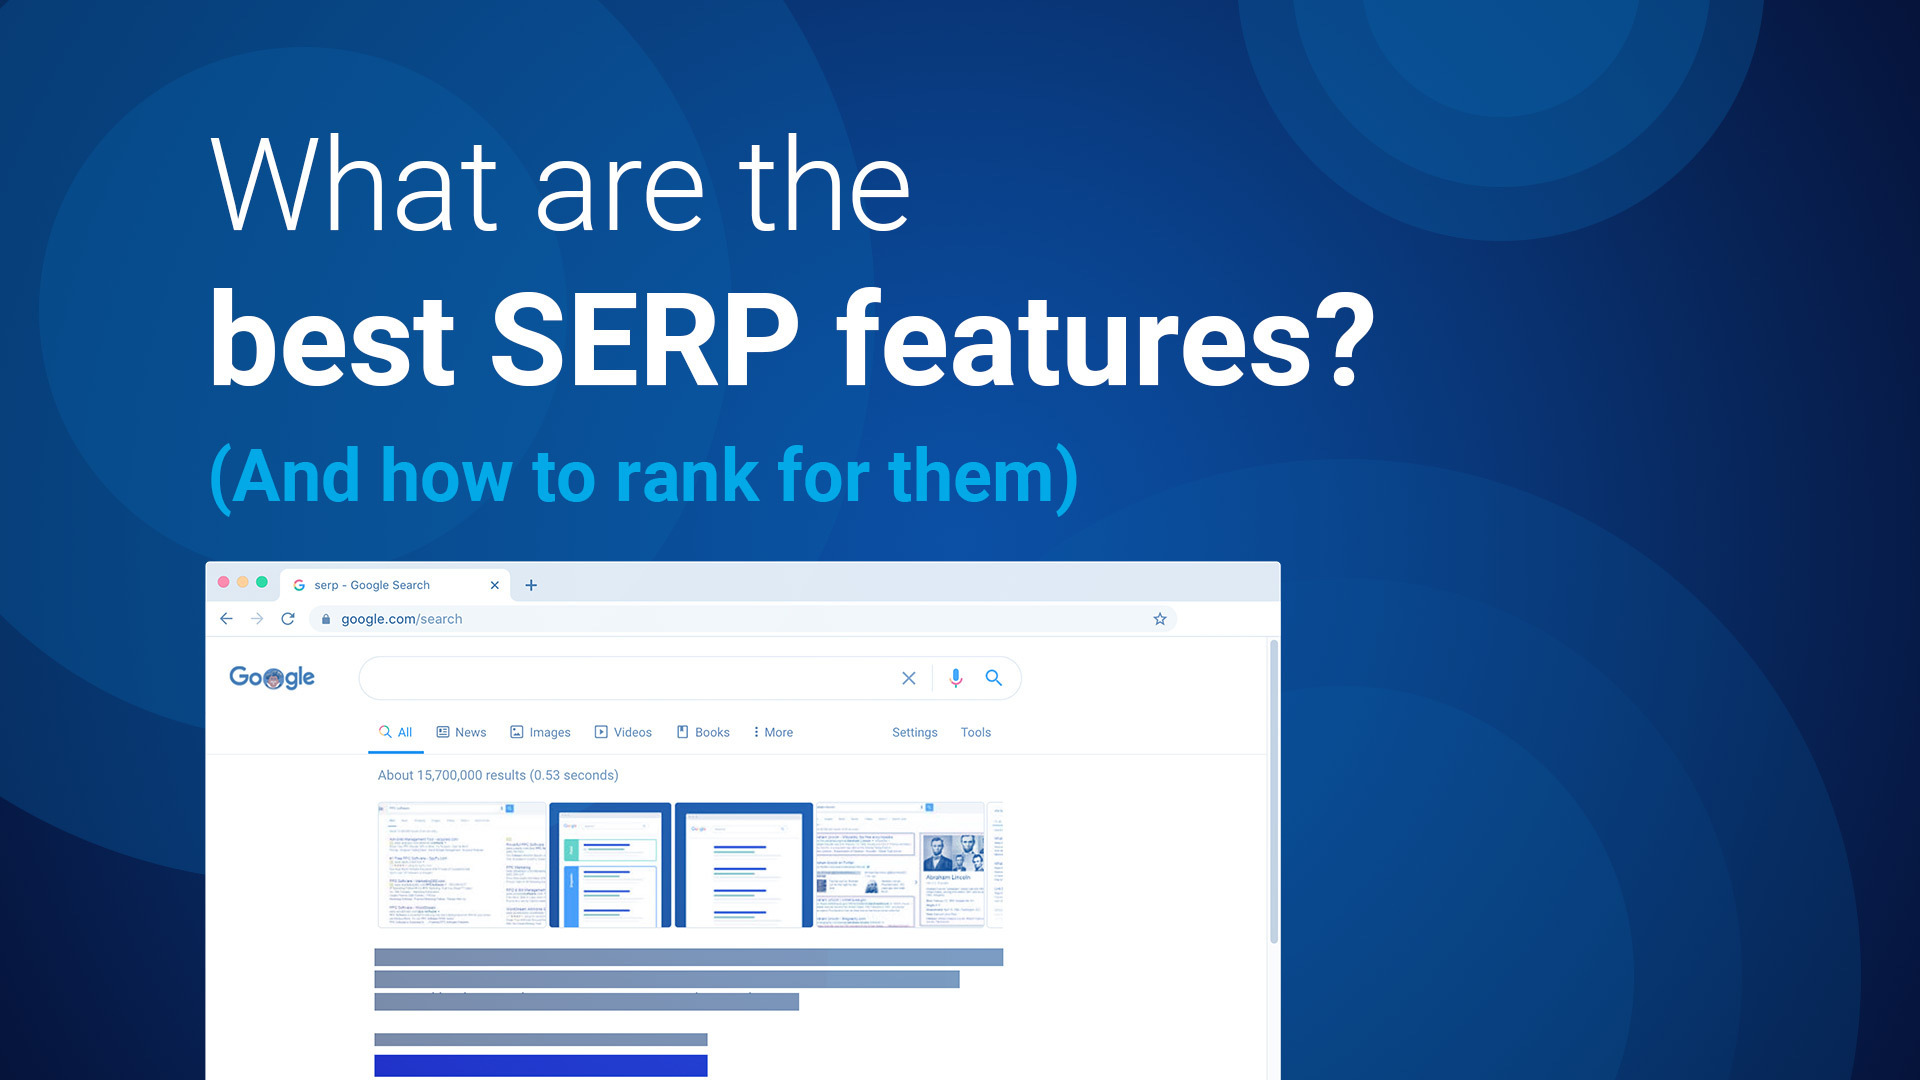 What are the best SERP features? (And how to rank for them)